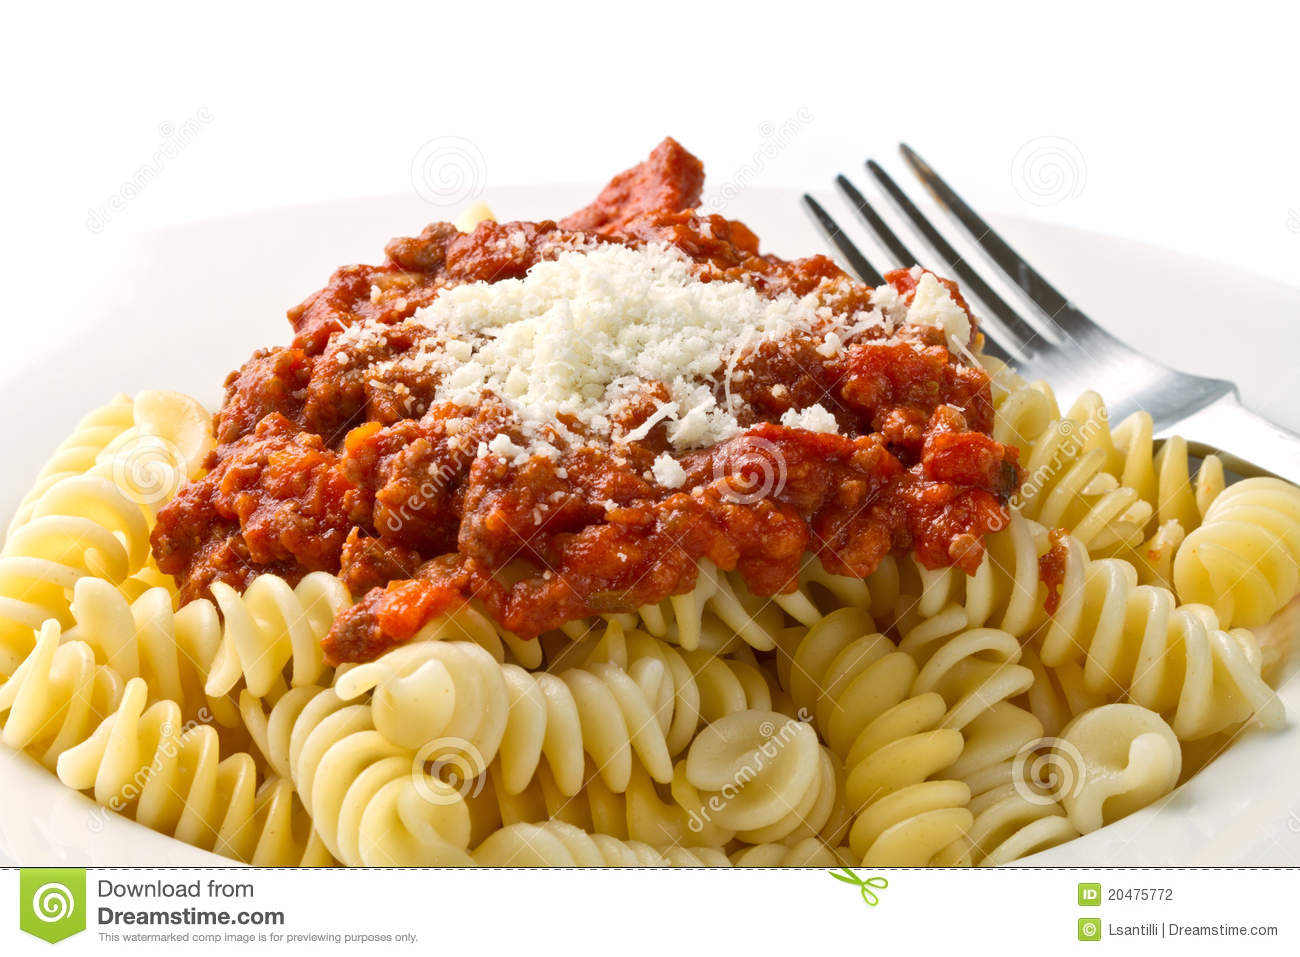 Pasta with bolognese sauce with tomatoes, meat and parmesan cheese.